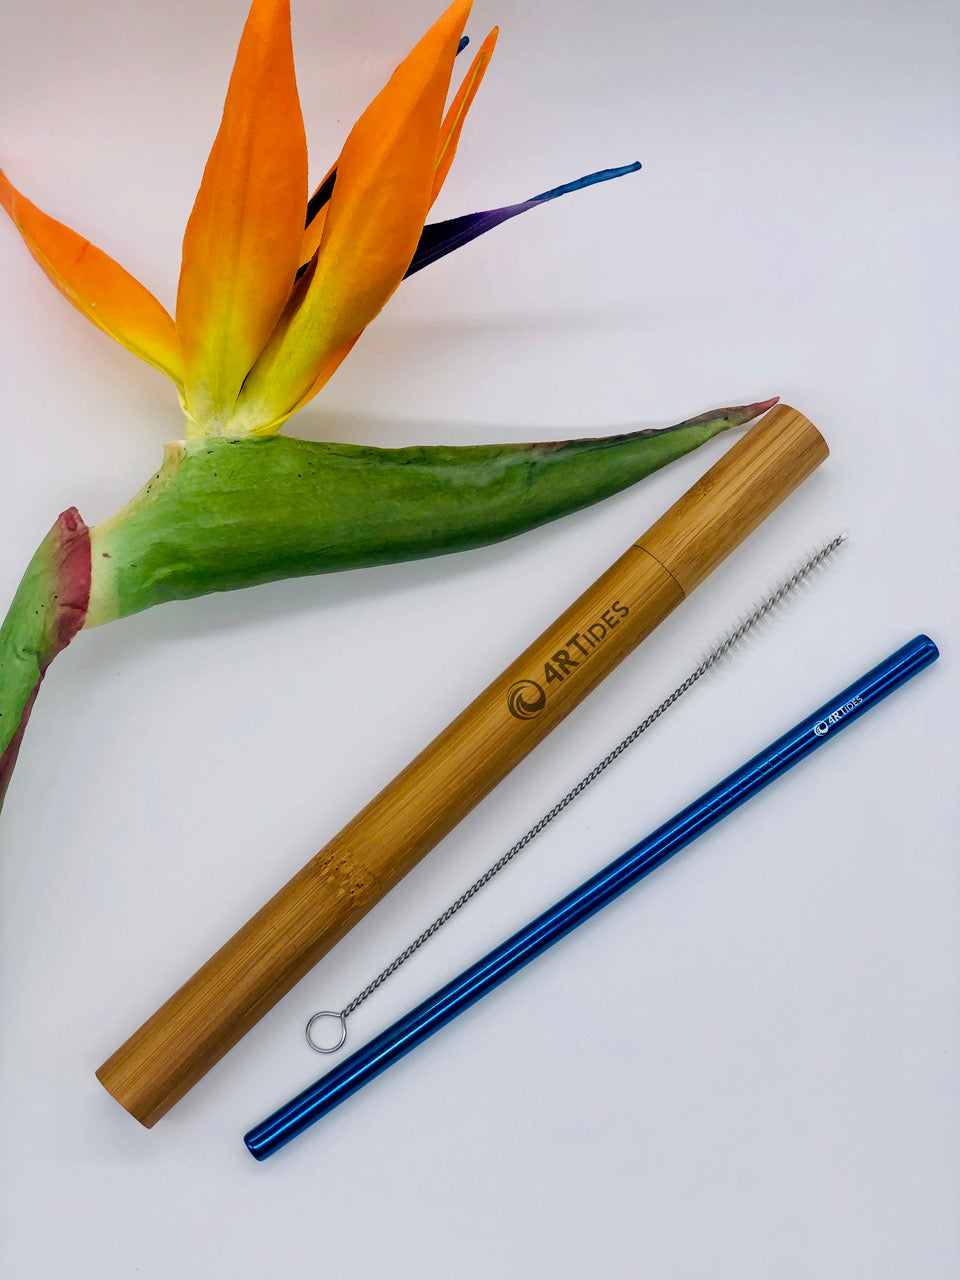 Bamboo case with premium metal straw and brush